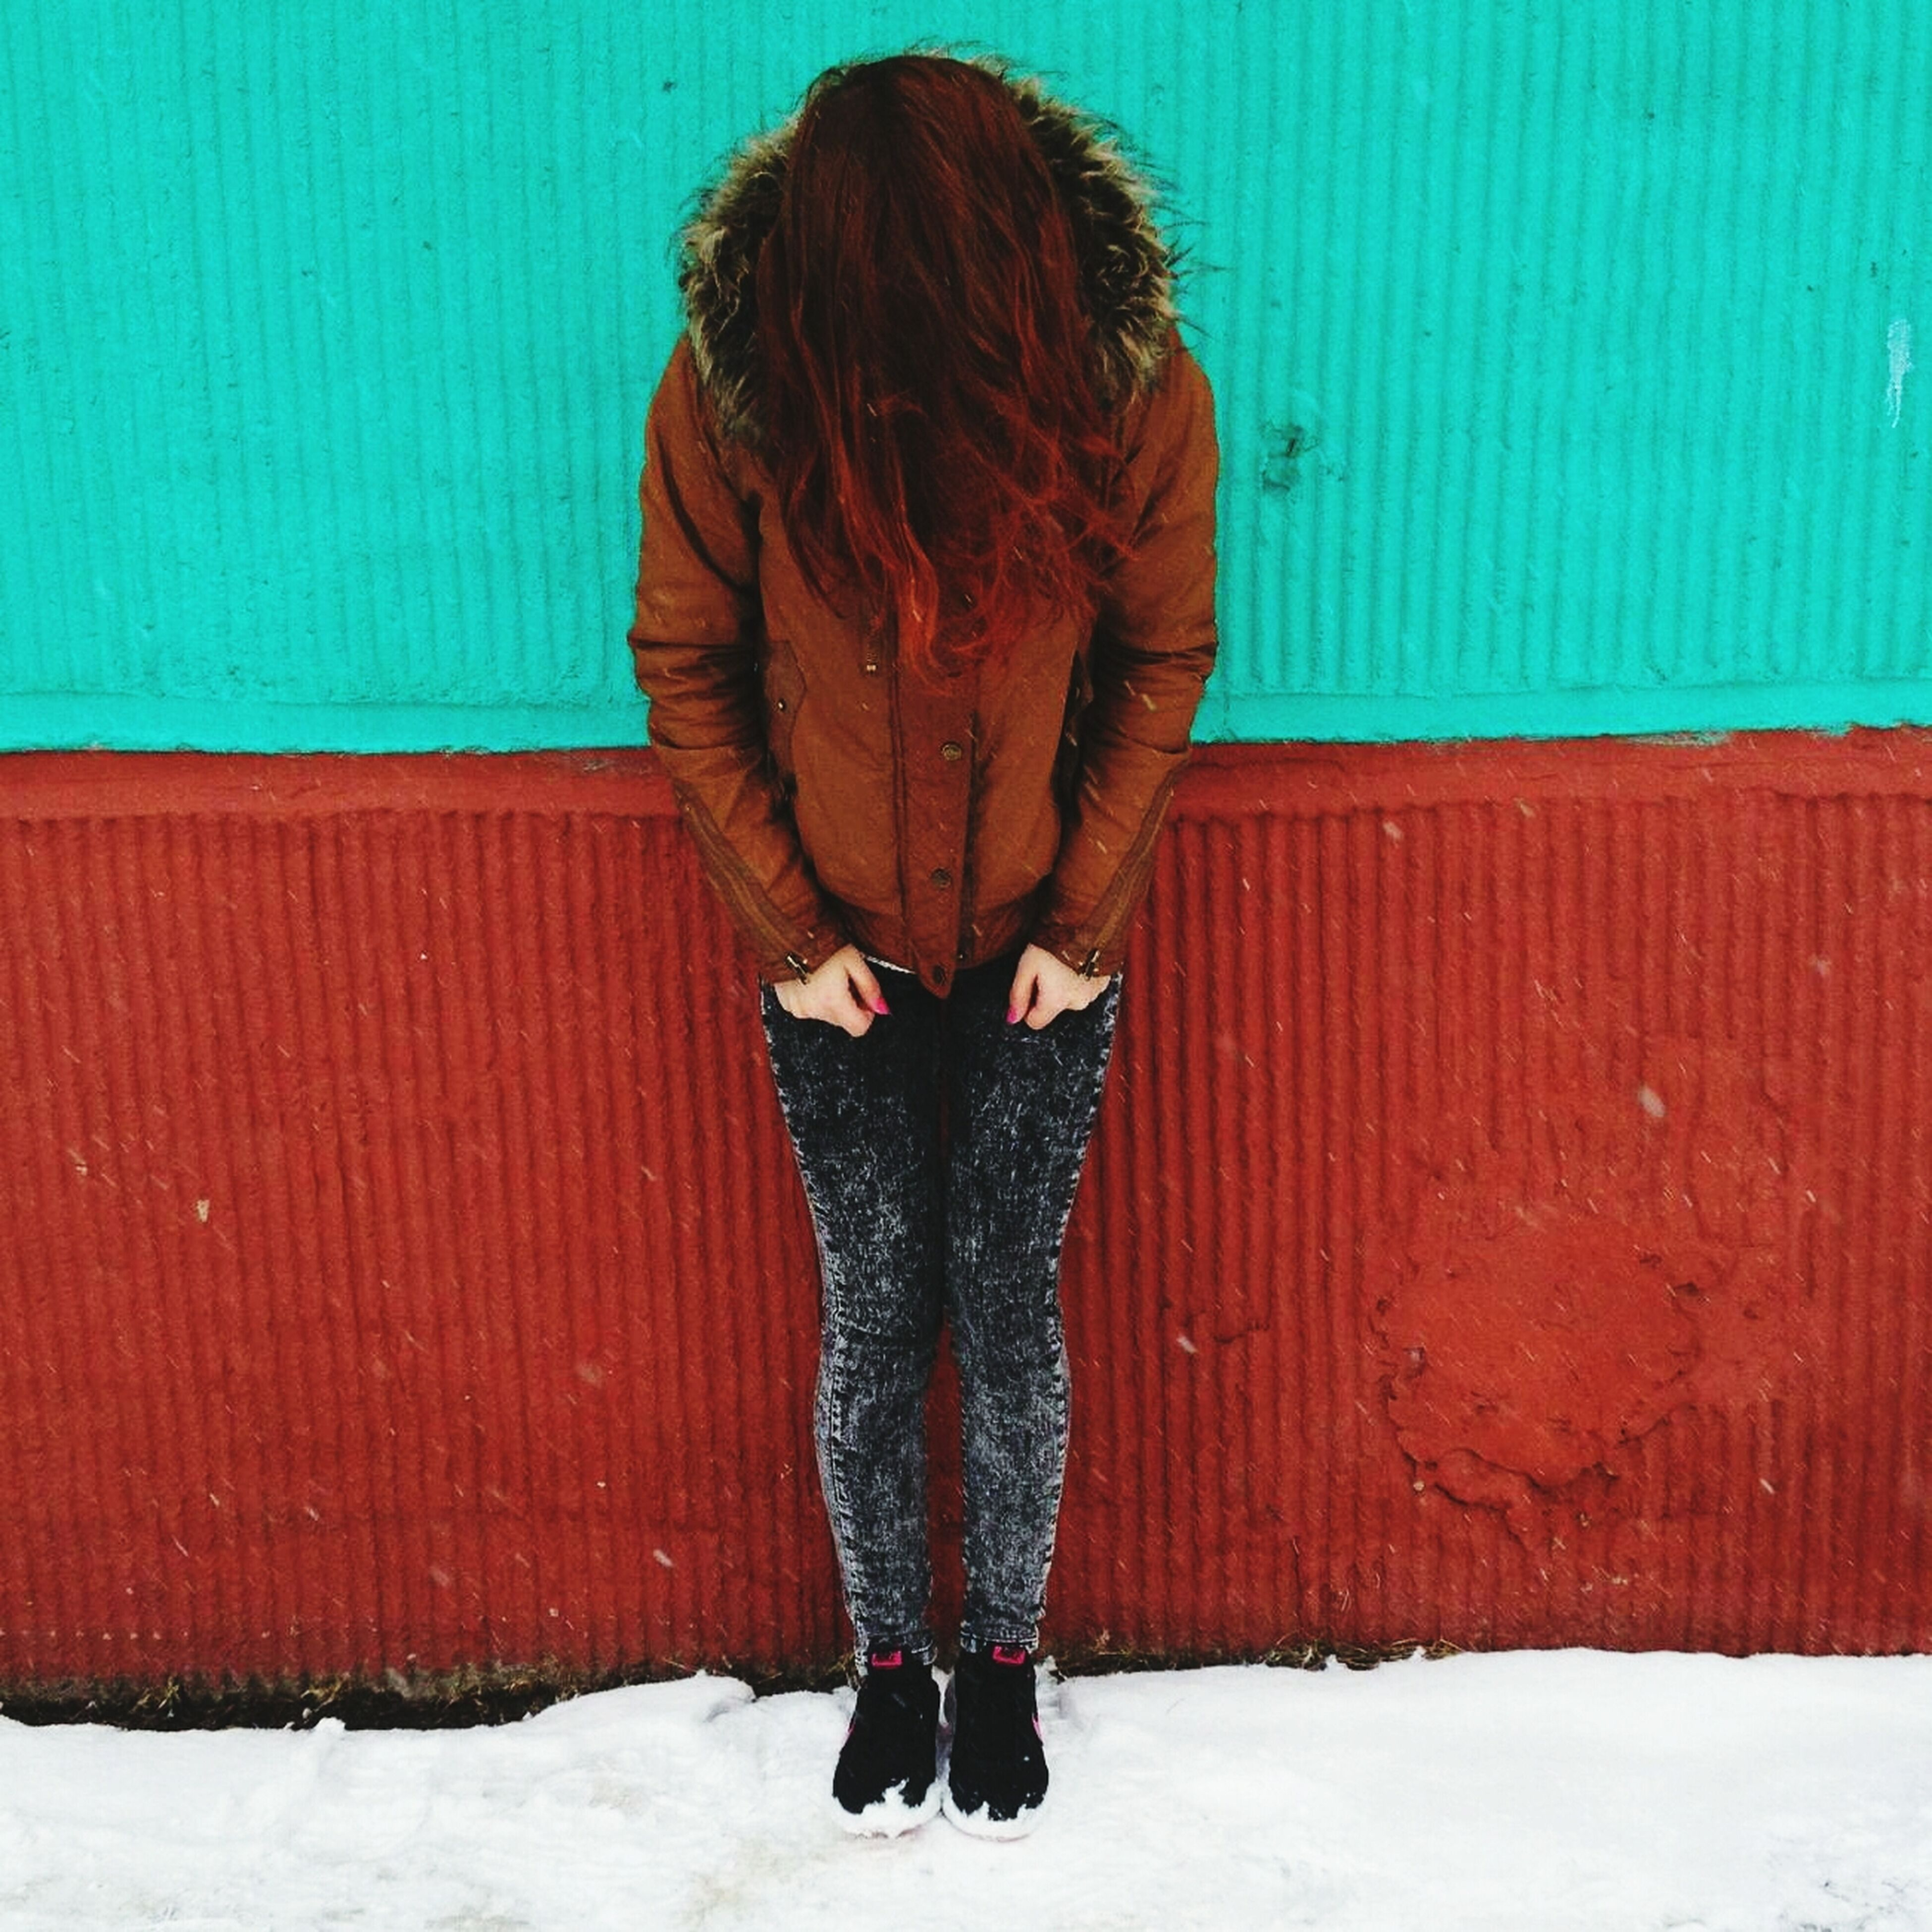 winter, snow, cold temperature, blue, season, standing, lifestyles, red, full length, rear view, warm clothing, covering, leisure activity, wall - building feature, built structure, house, architecture, casual clothing